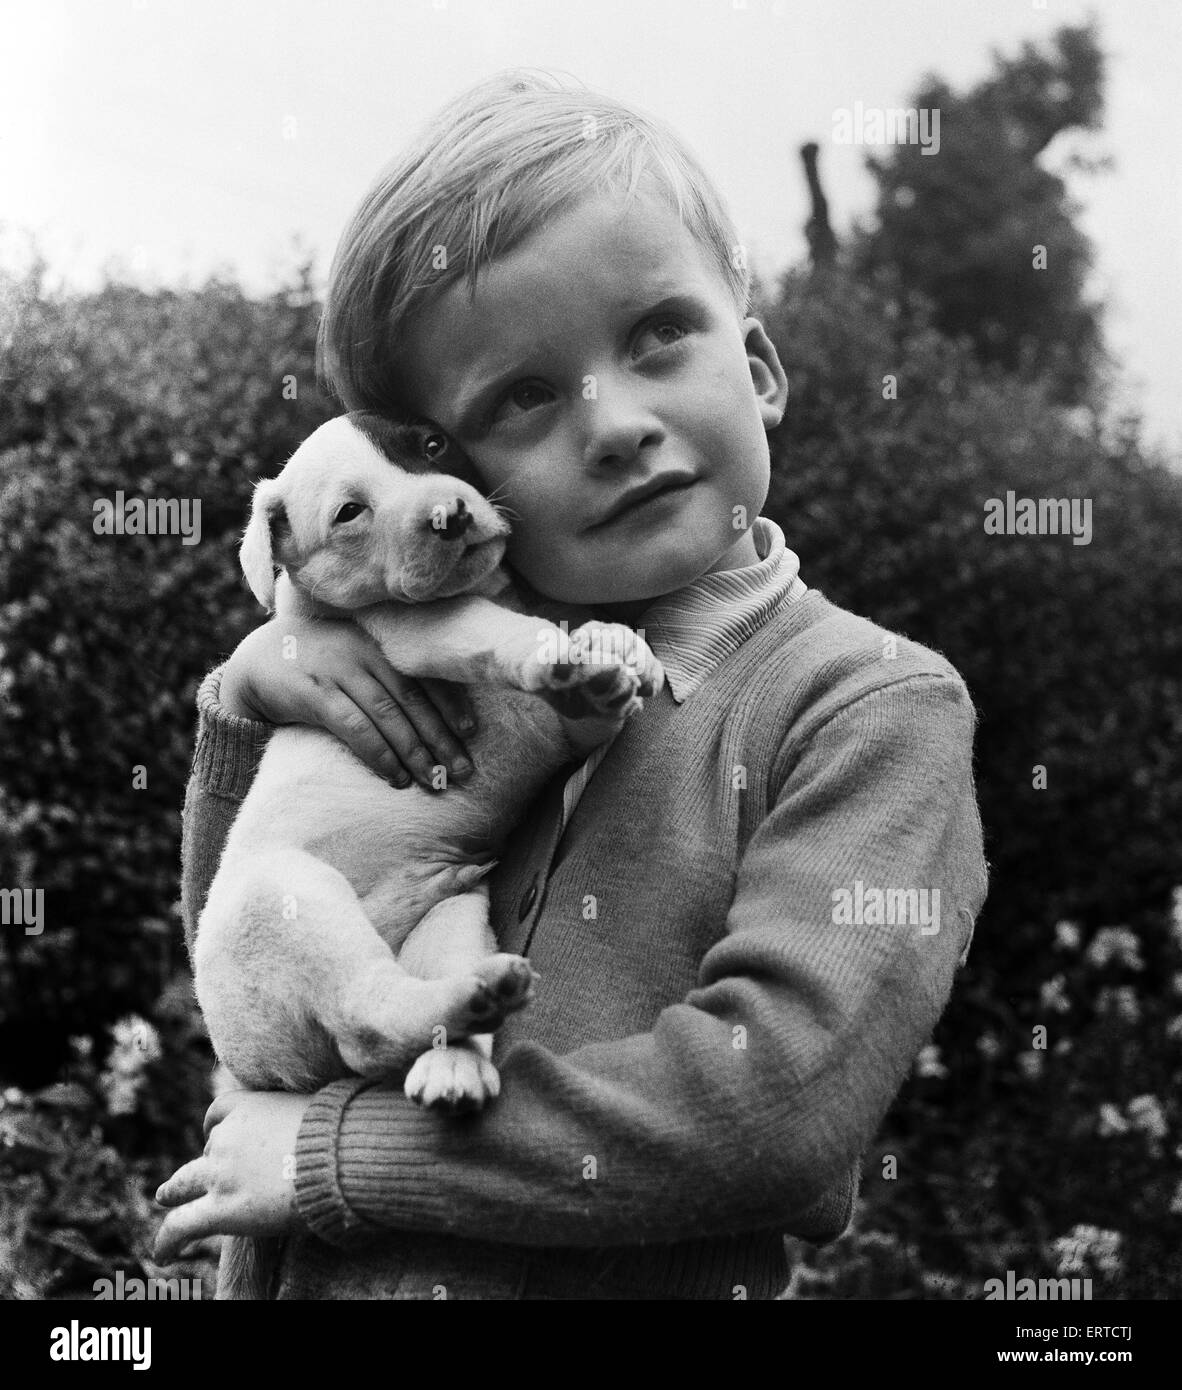 Four-year old Ryan Widdowson of Meanwood, Leeds, holds his new puppy, Whiskey. 19th August 1953. - Stock Image